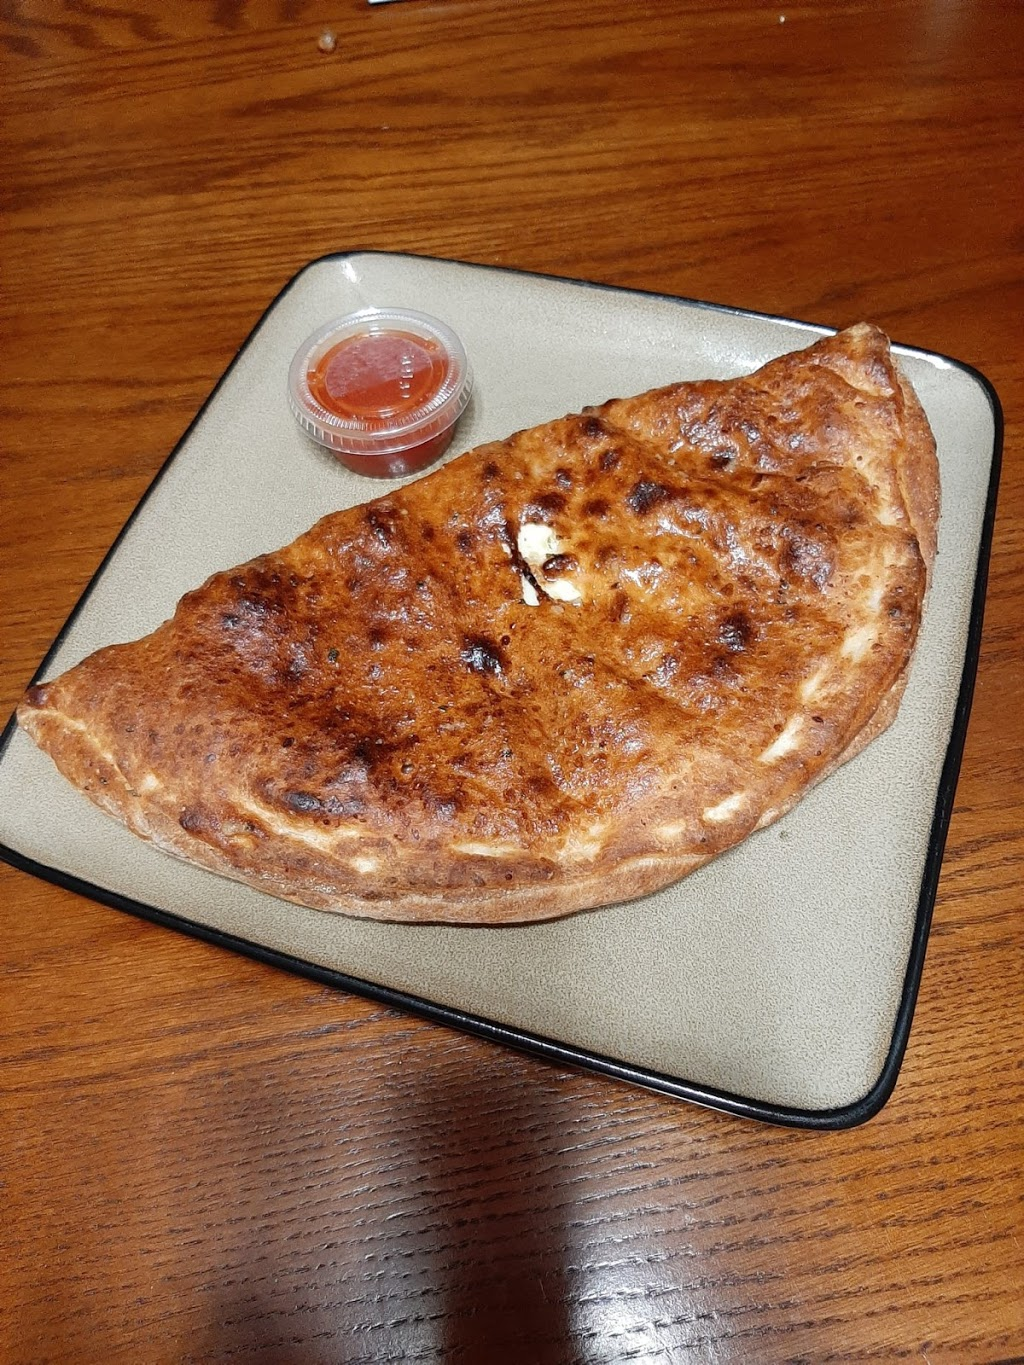 Titos Pizza   restaurant   127 King St, Burford, ON N0E 1A0, Canada   5194499494 OR +1 519-449-9494